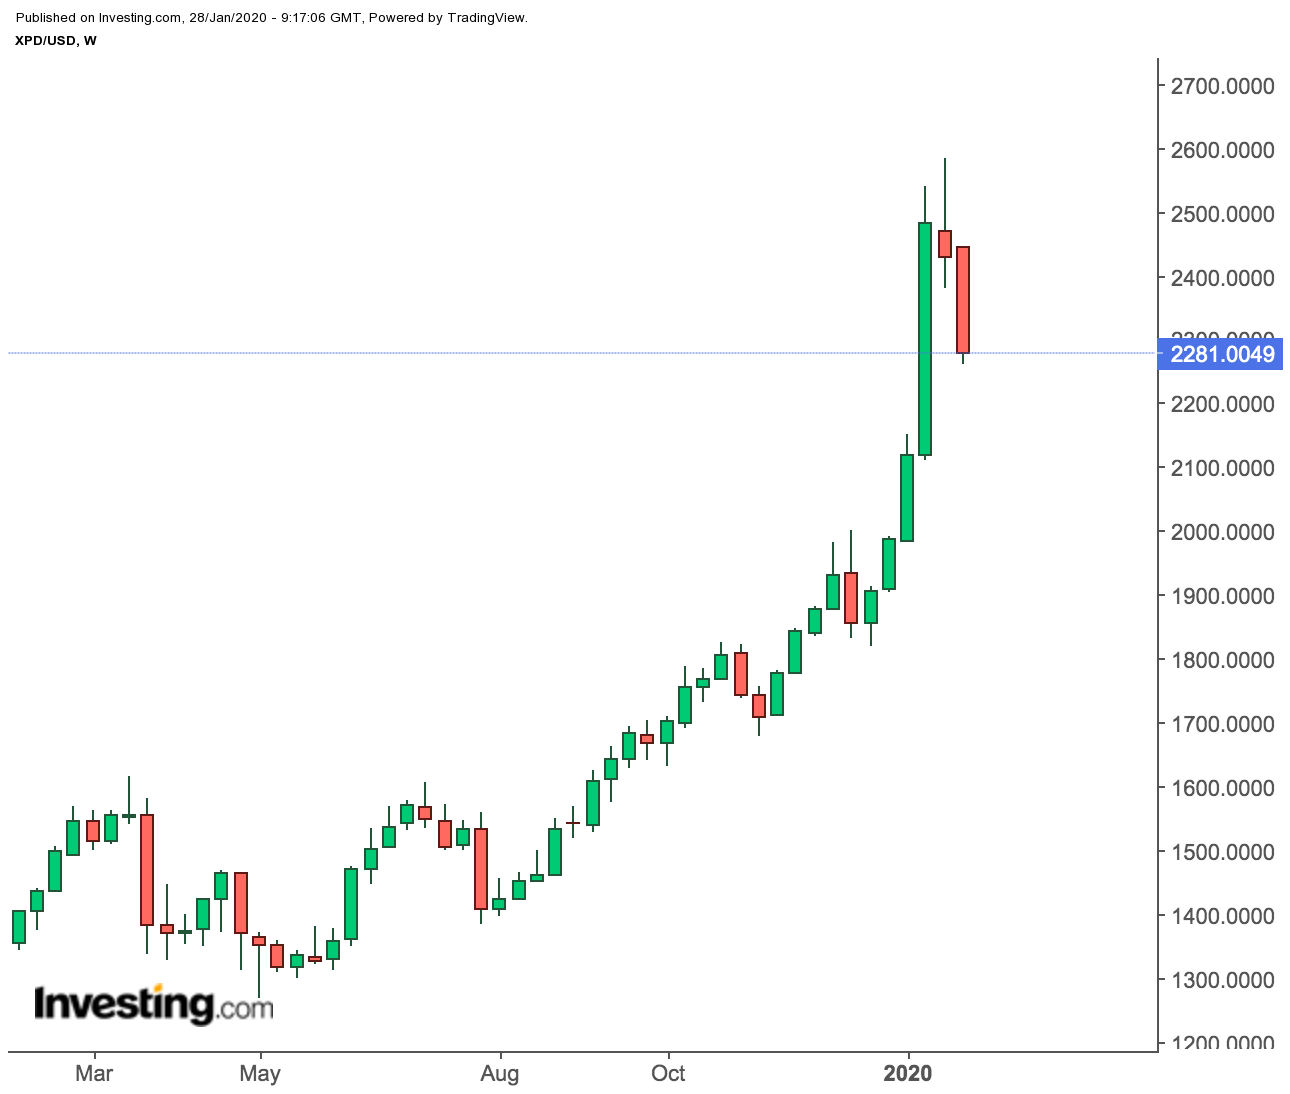 Spot Palladium Weekly Prices